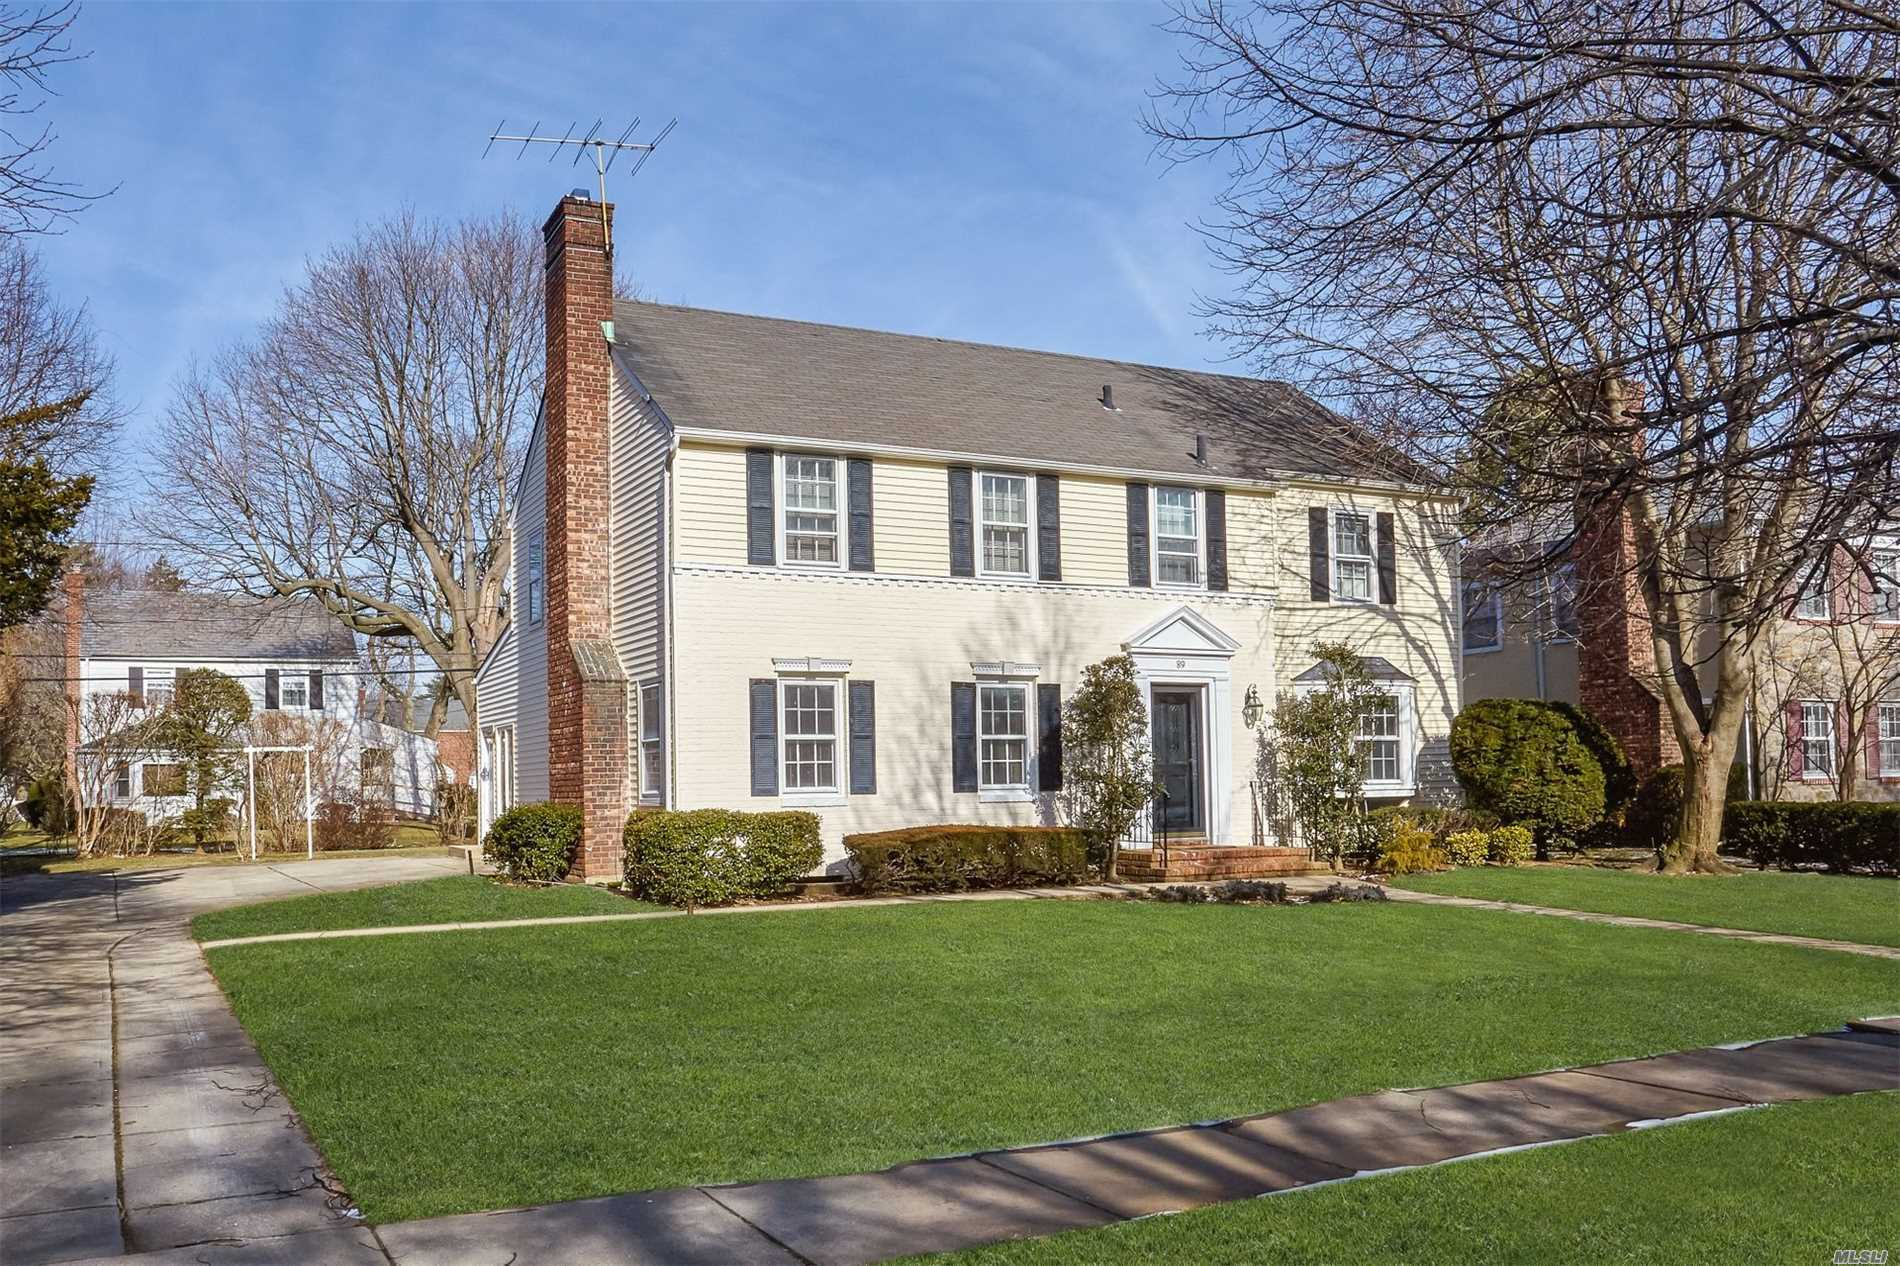 Traditional Center Hall Colonial Located Mid Block, Desirable Mott Section, Oversize Property, Quiet Street. Main Level Features A Huge Living Room W/Wood Burning Fireplace, Gorgeous Custom Eat-In Kitchen W/Island That Opens Up To A Huge Great Room With Skylight. Also, Large Cozy Family Rm Off Great Rm & Doors That Lead To A Large Backyard. Very Bright And Open Feel Throughout. Perfect Place To Call Home. School & Gen. Taxes Will Be Lower 19.08% On New 19/20 Accepted Assessment.